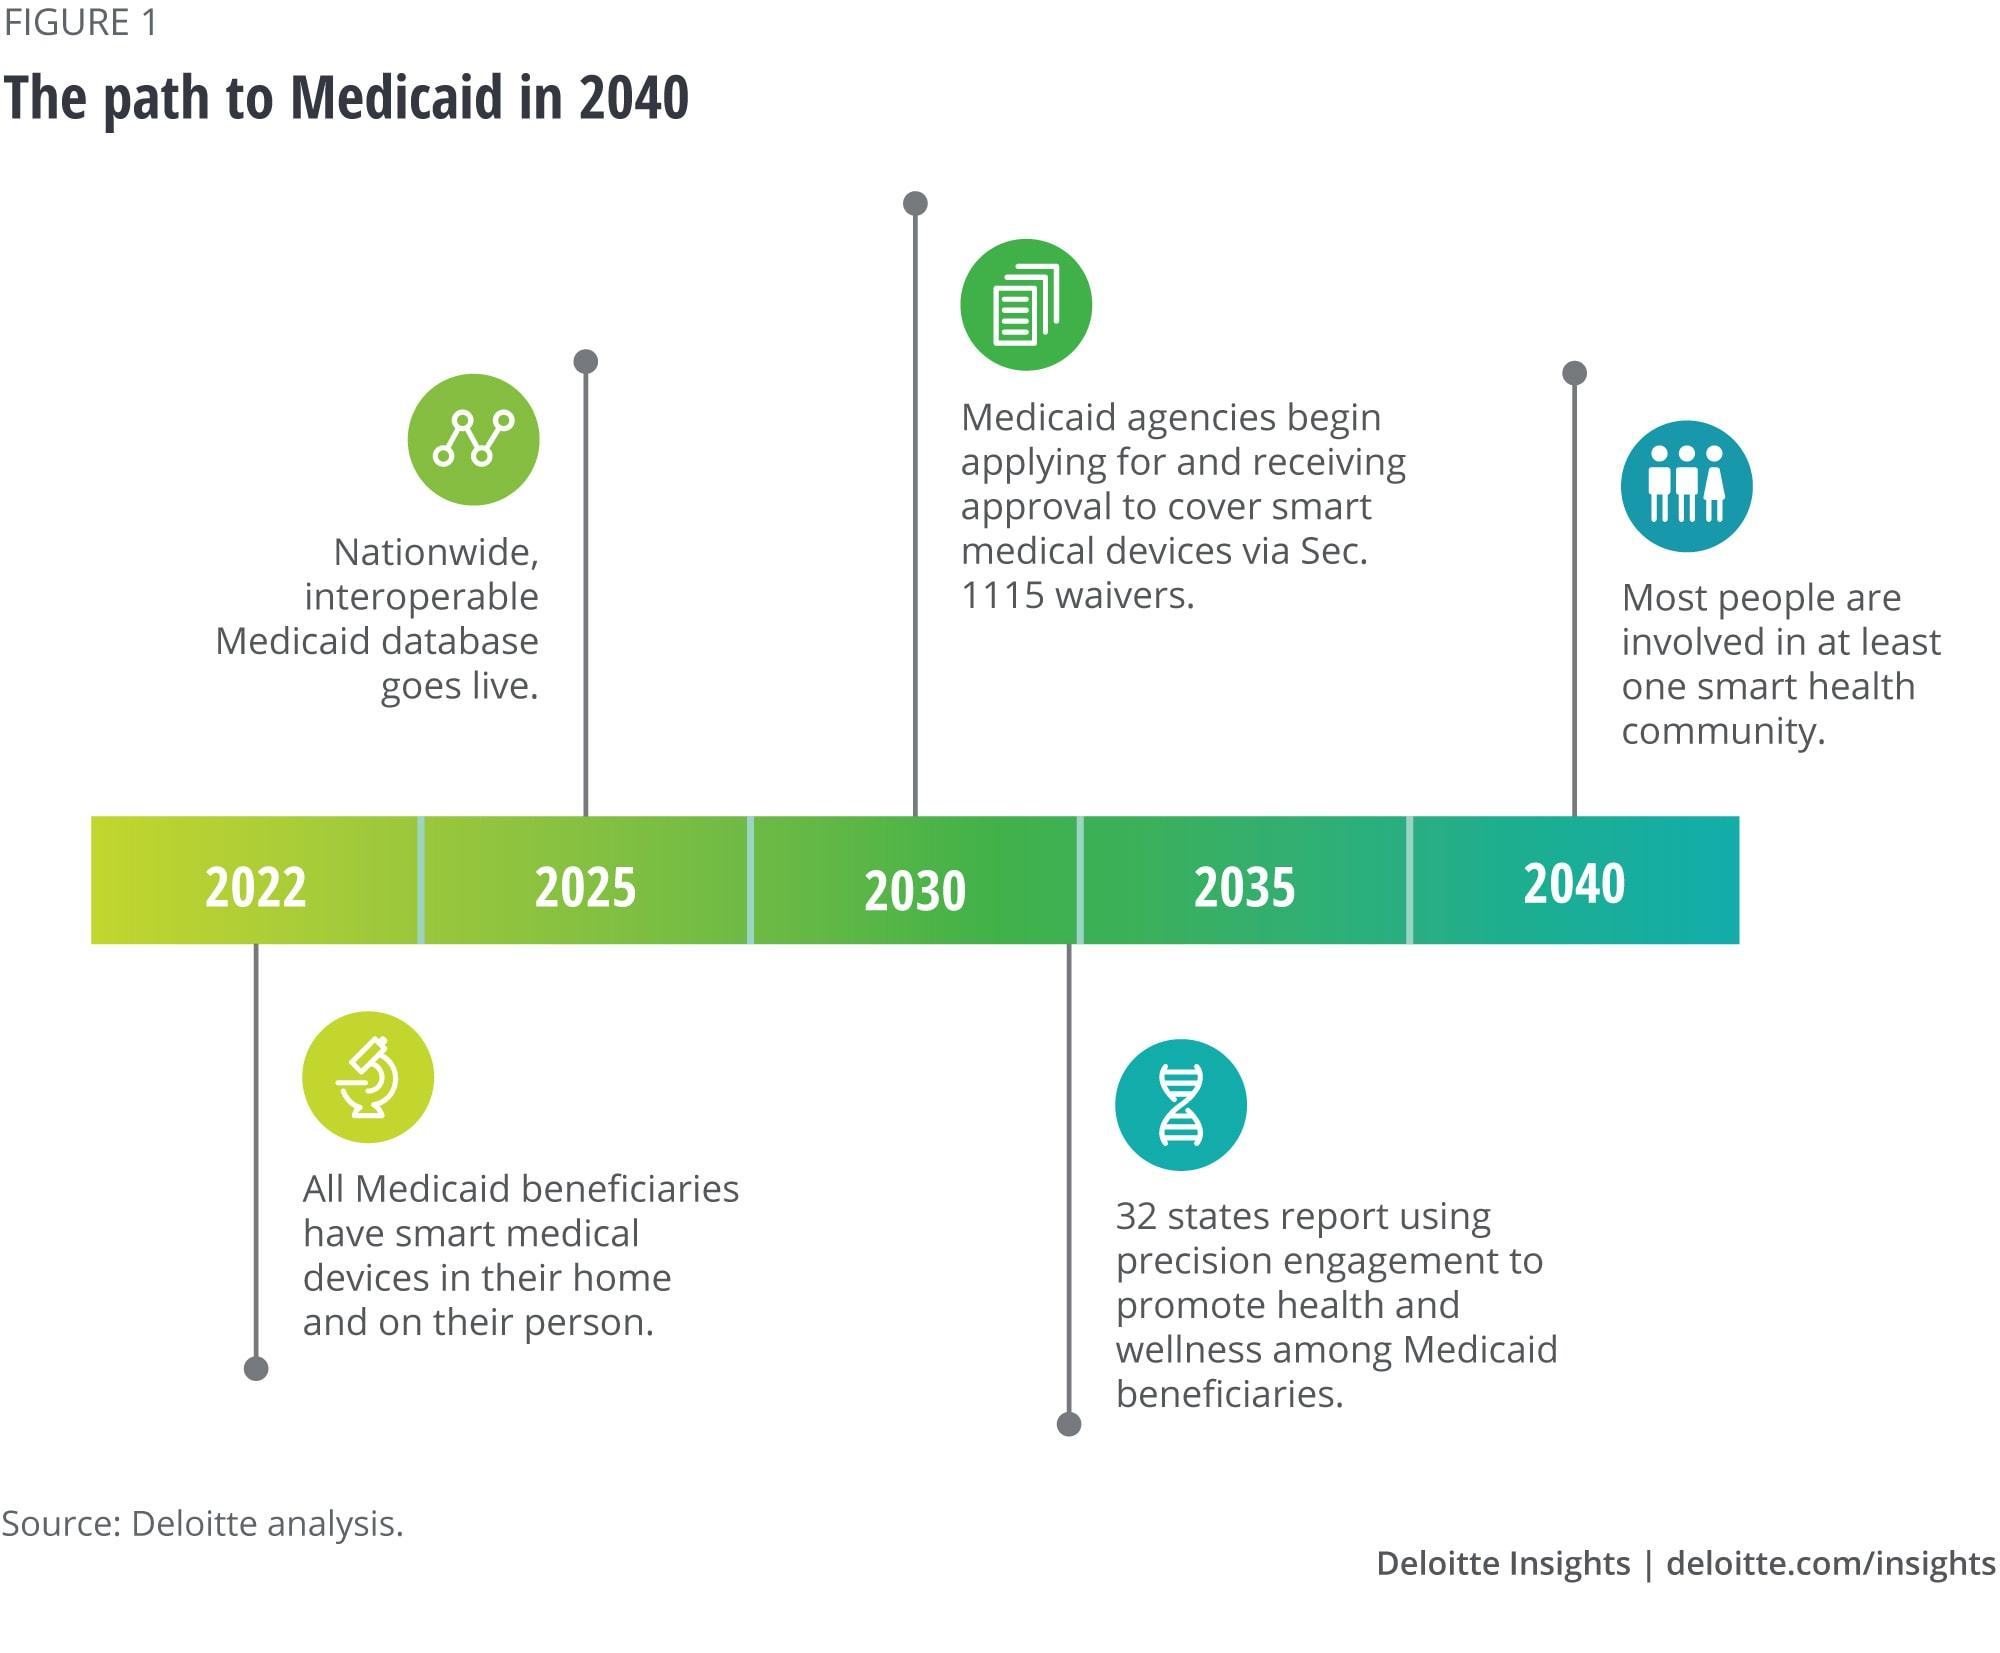 The path to Medicaid in 2040